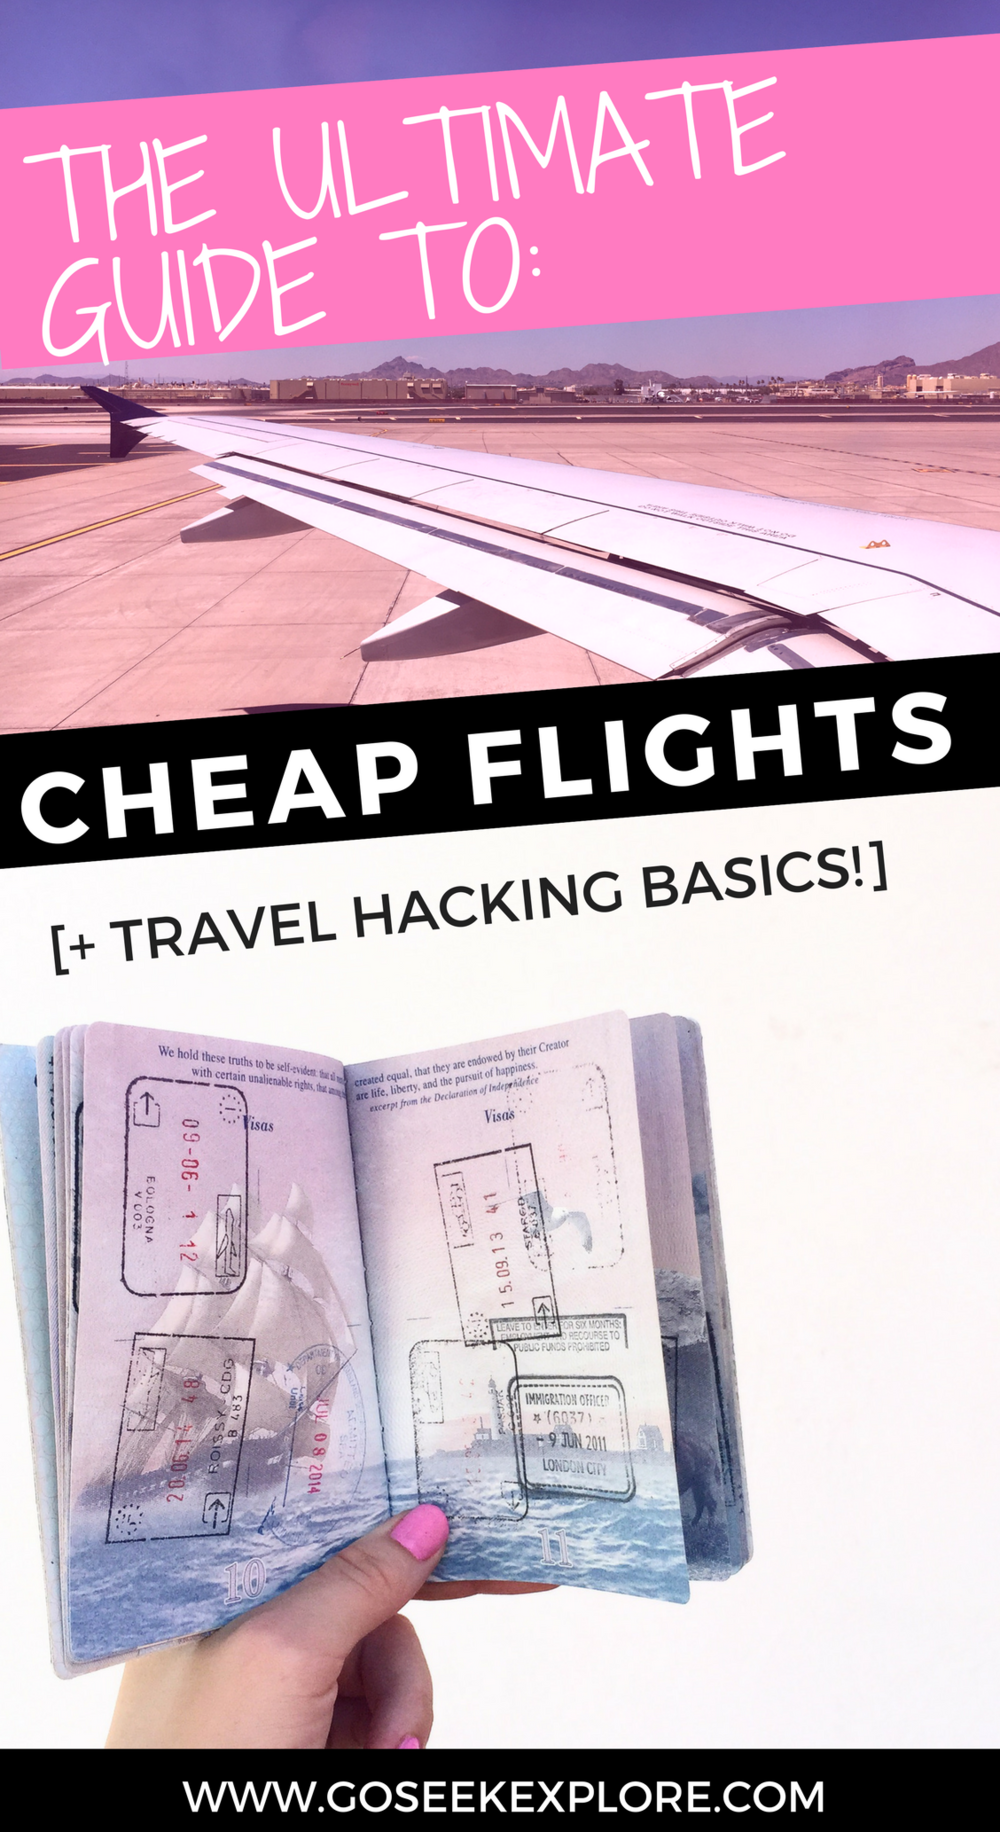 The Ultimate Guide to Cheap Flights and Travel Hacking Basics! The best online resources for finding incredible flight deals, plus the basics of travel hacking so you can earn free or super cheap flights. | GO SEEK EXPLORE | ultimate-guide-cheap-flights-travel-hacking